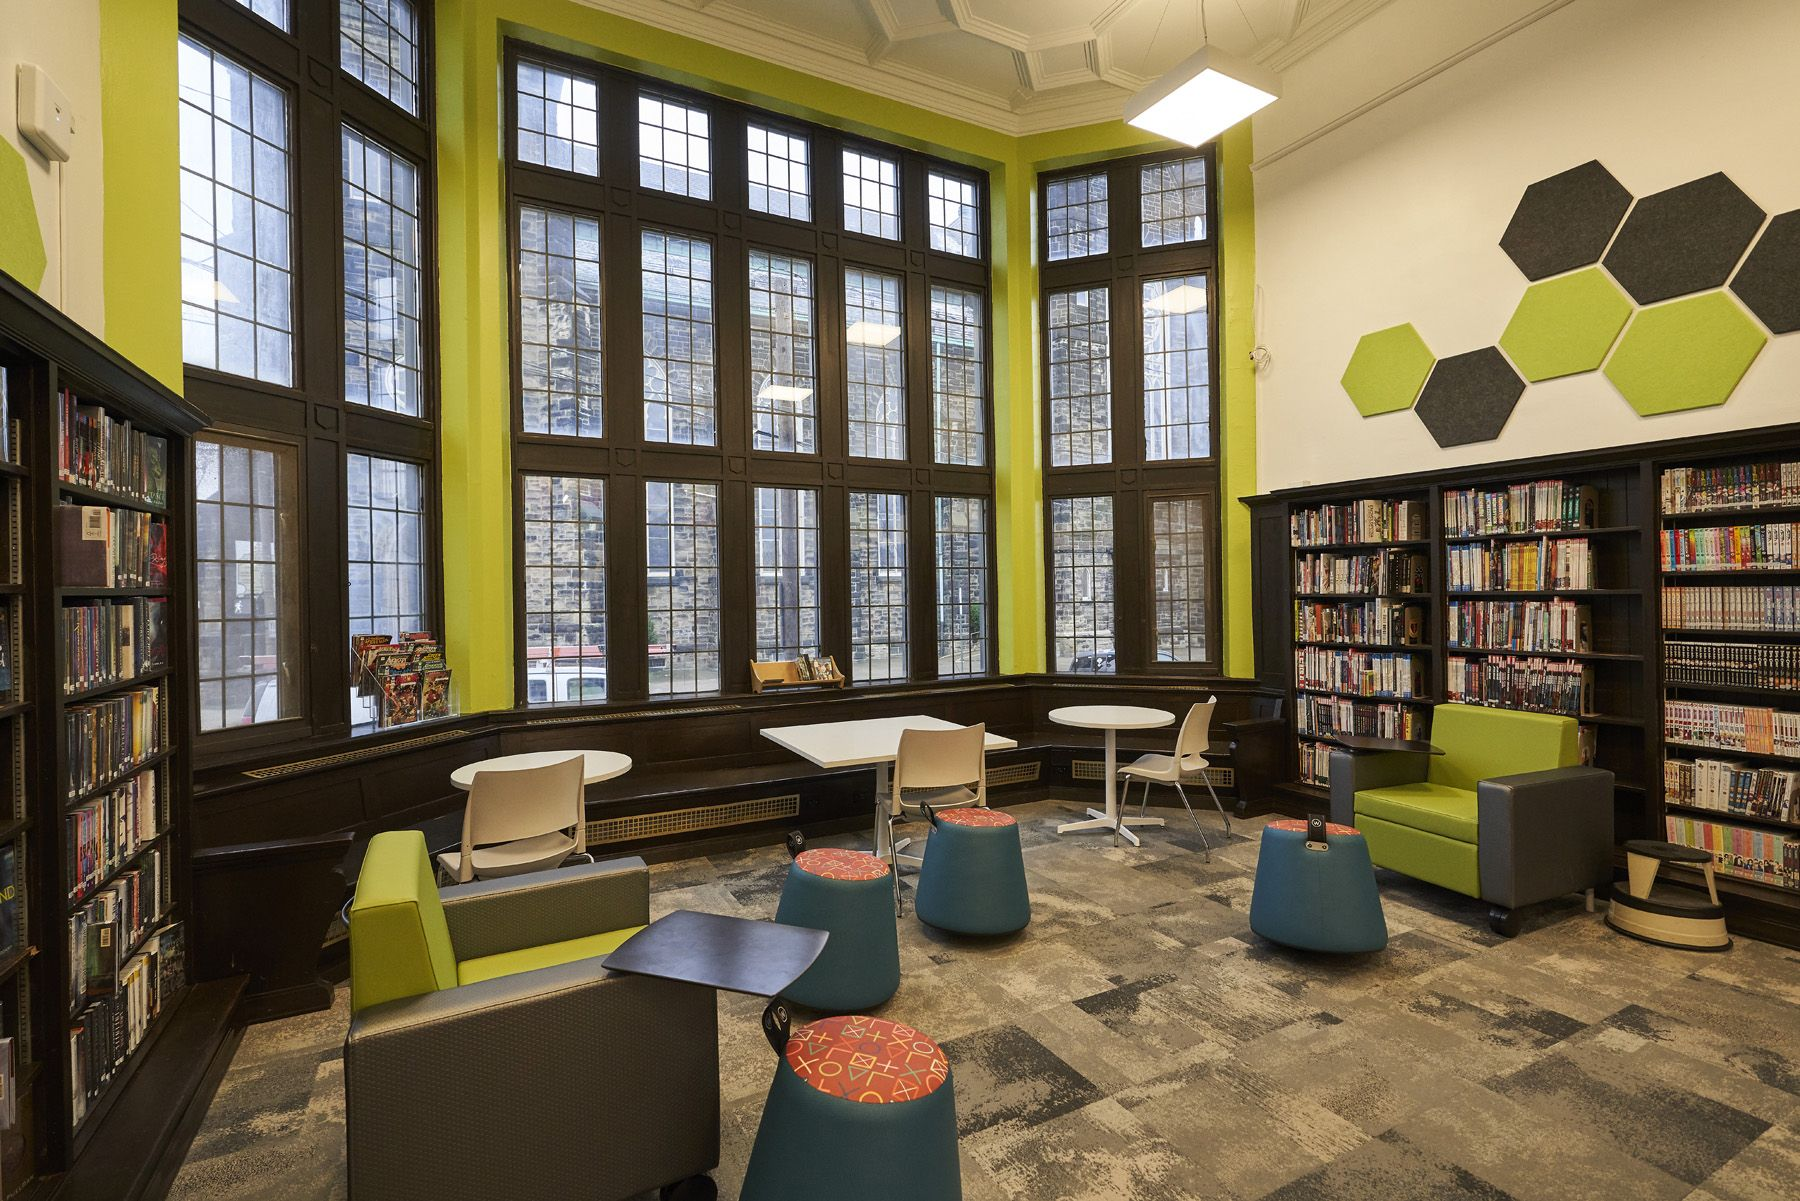 Pin On Library Interiors